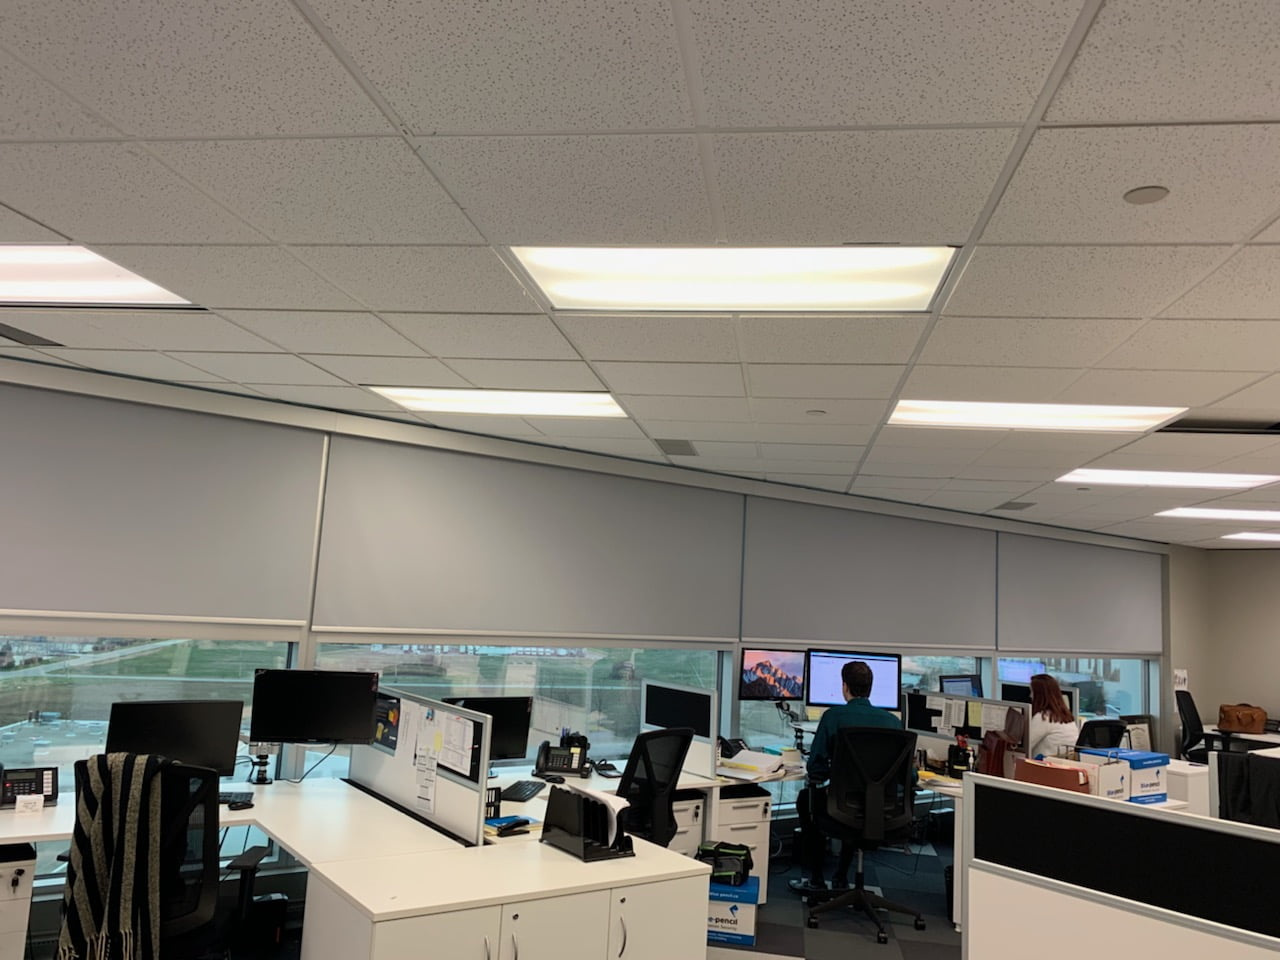 Automated Blinds for Office energy savings